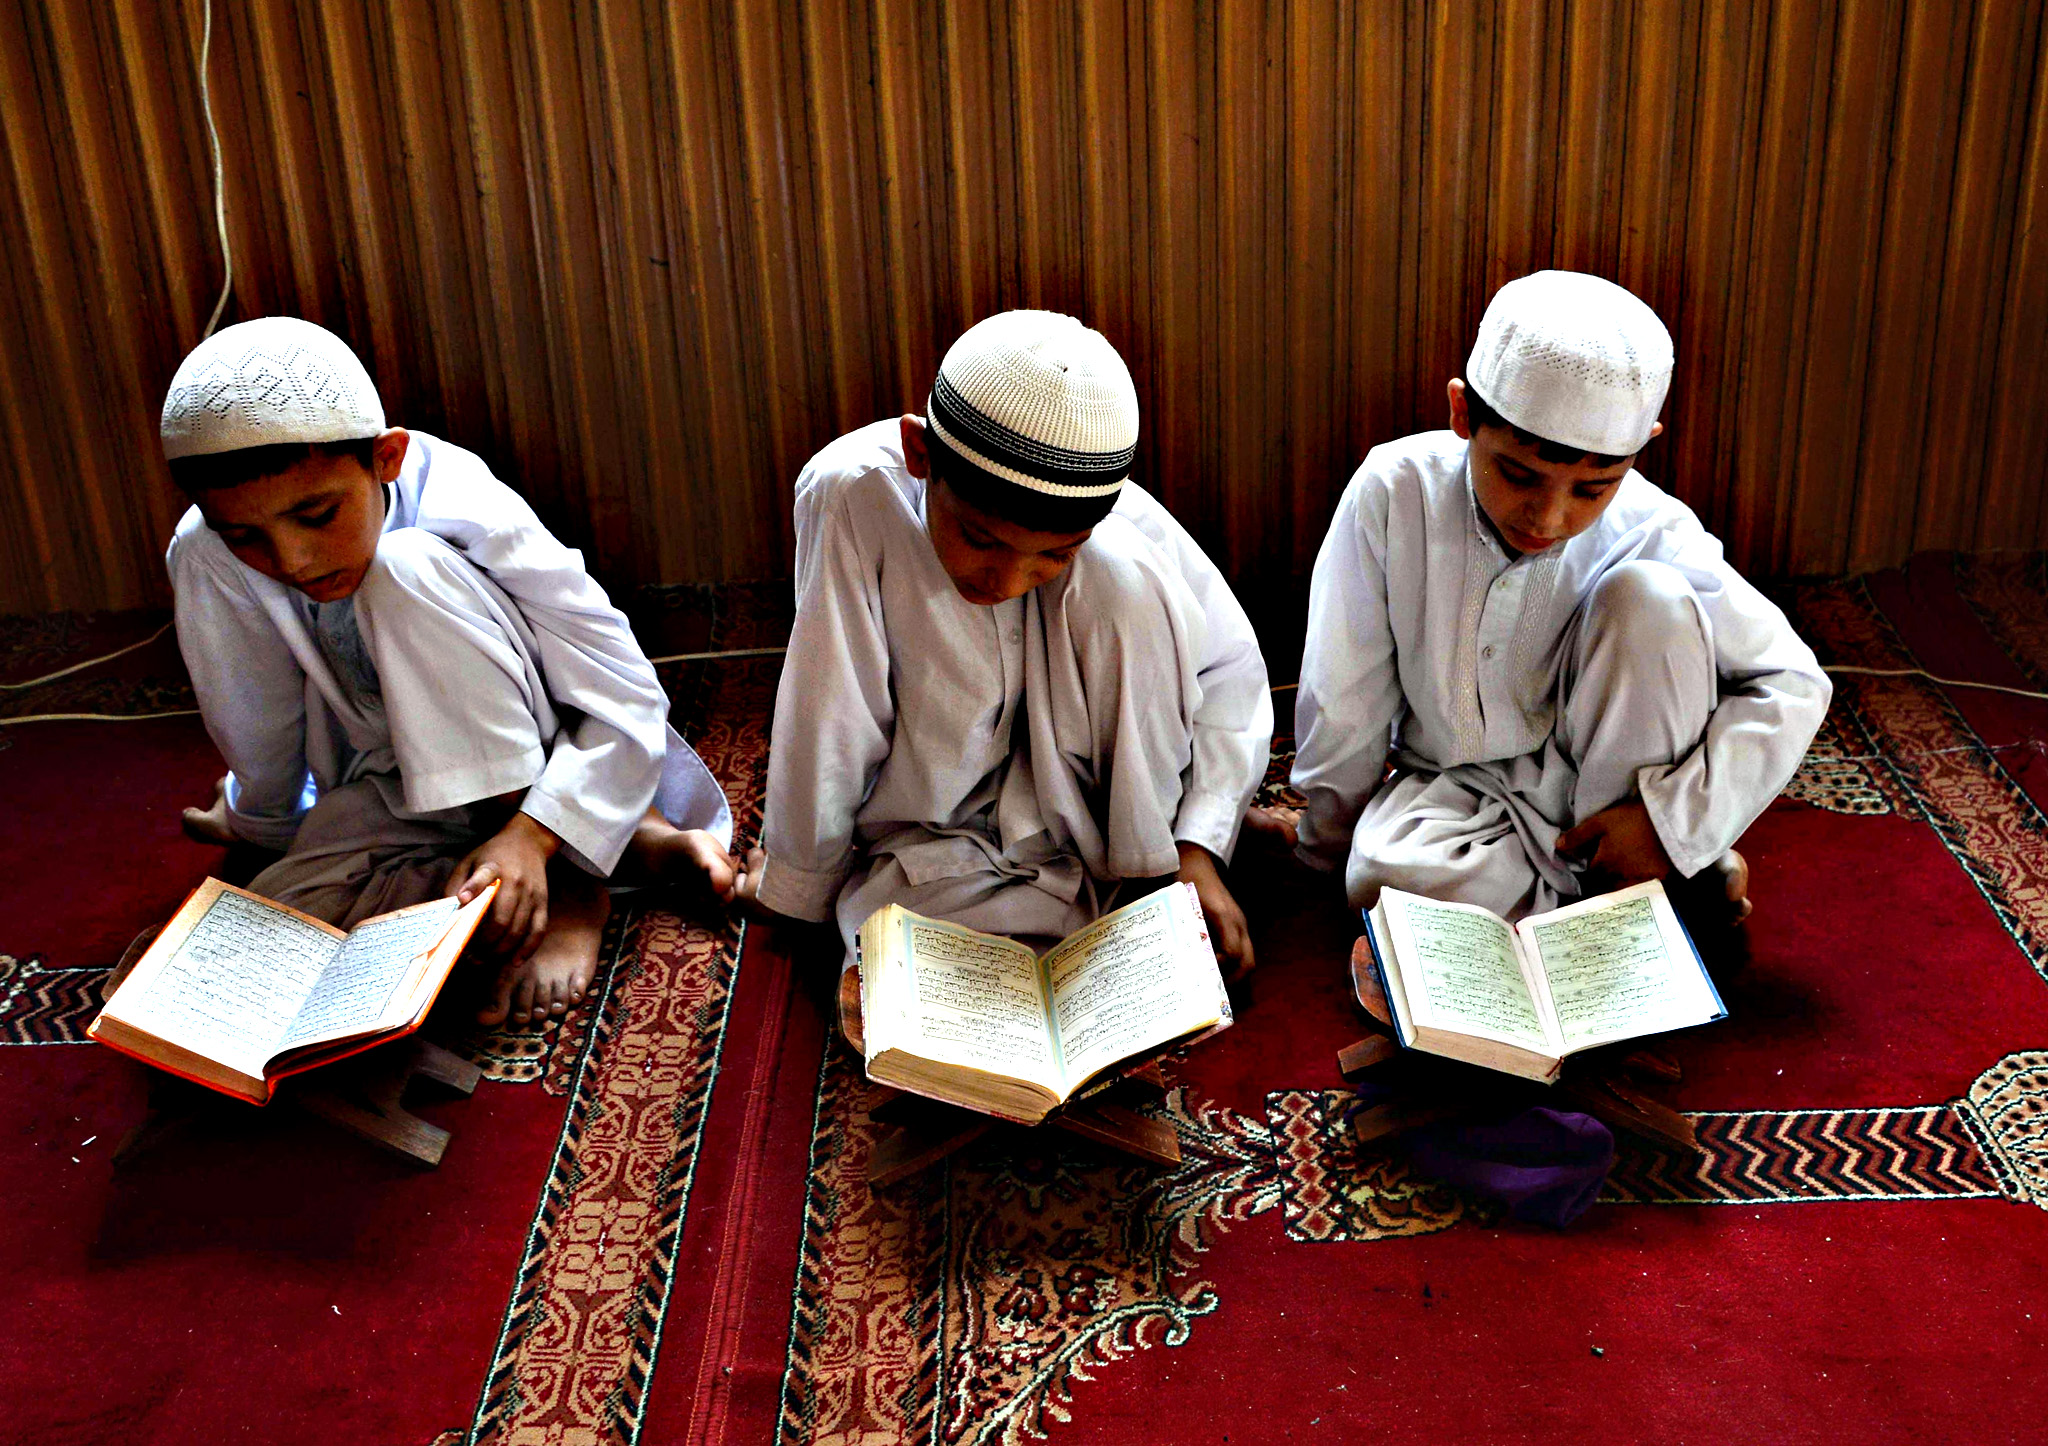 Afghan children study the Koran during first day of the month of Ramadan at a mosque in Jalalabad on Thursday, Islam's holy month of Ramadan, which is calculated on the sighting of the new moon, will begin on June 18 in Afghanistan. Muslims all over the world fast from dawn until dusk and dates are usually eaten to break the fast